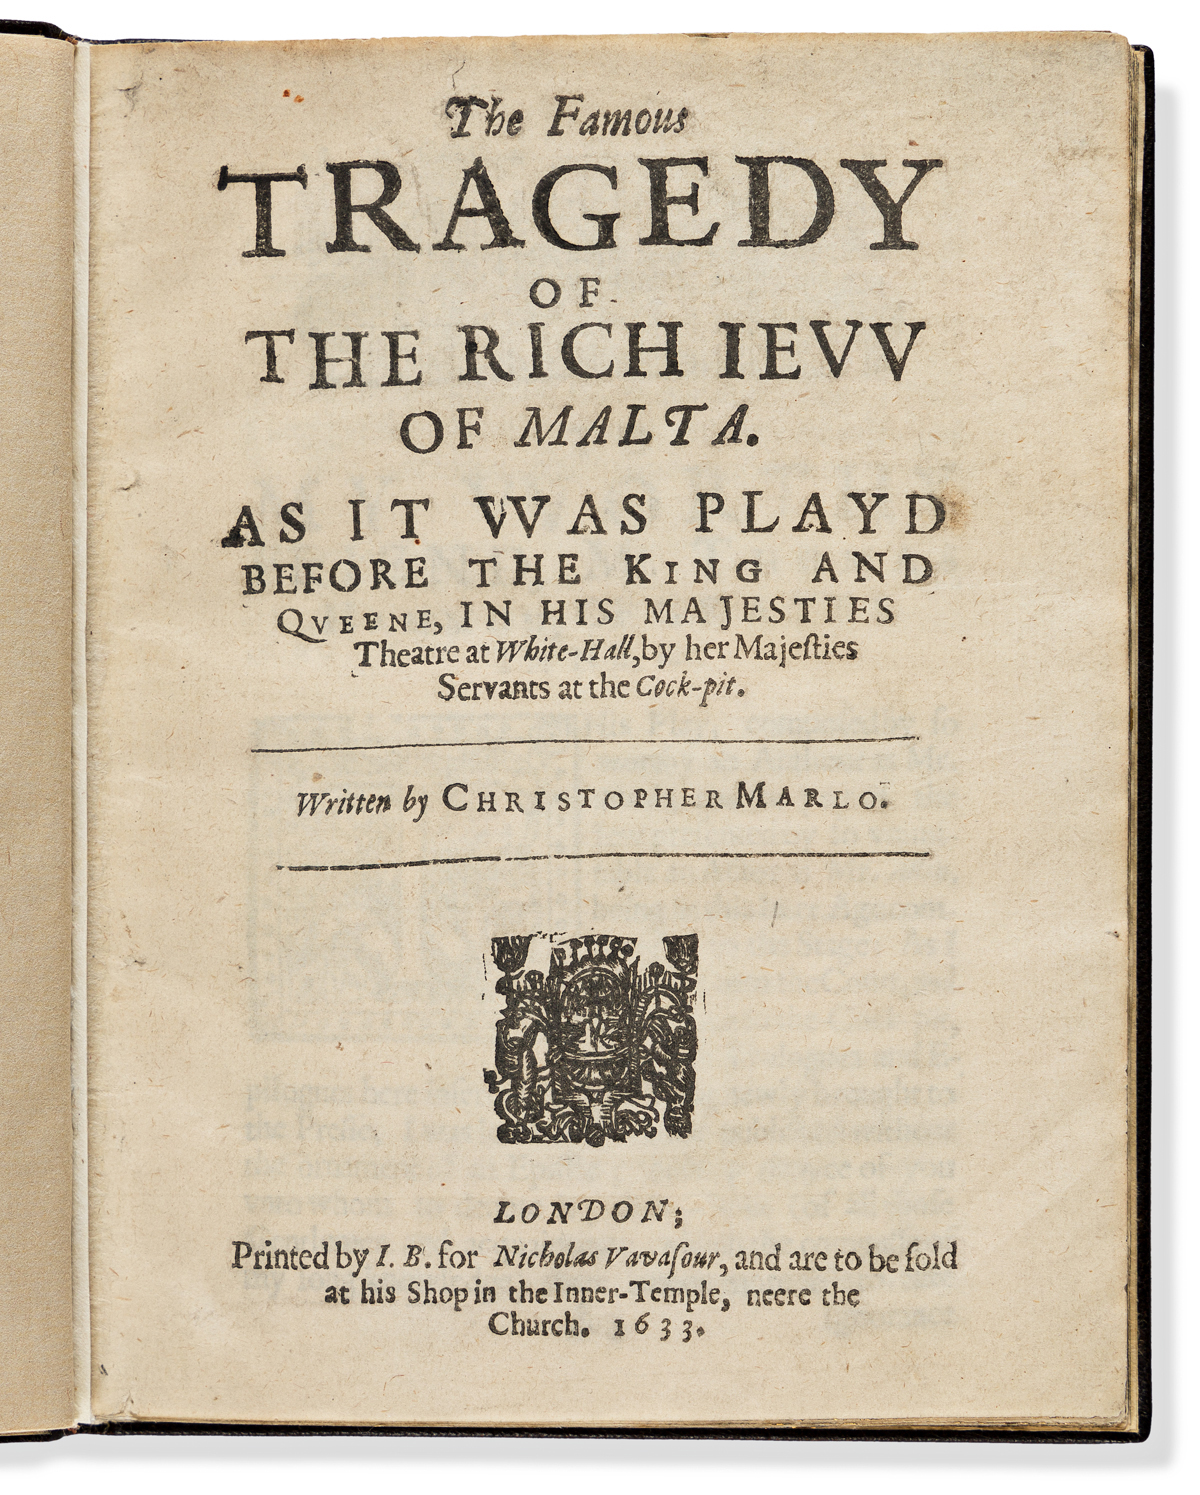 Marlowe, Christopher (1564-1593) The Famous Tragedy of the Rich Jew [Ievv] of Malta.